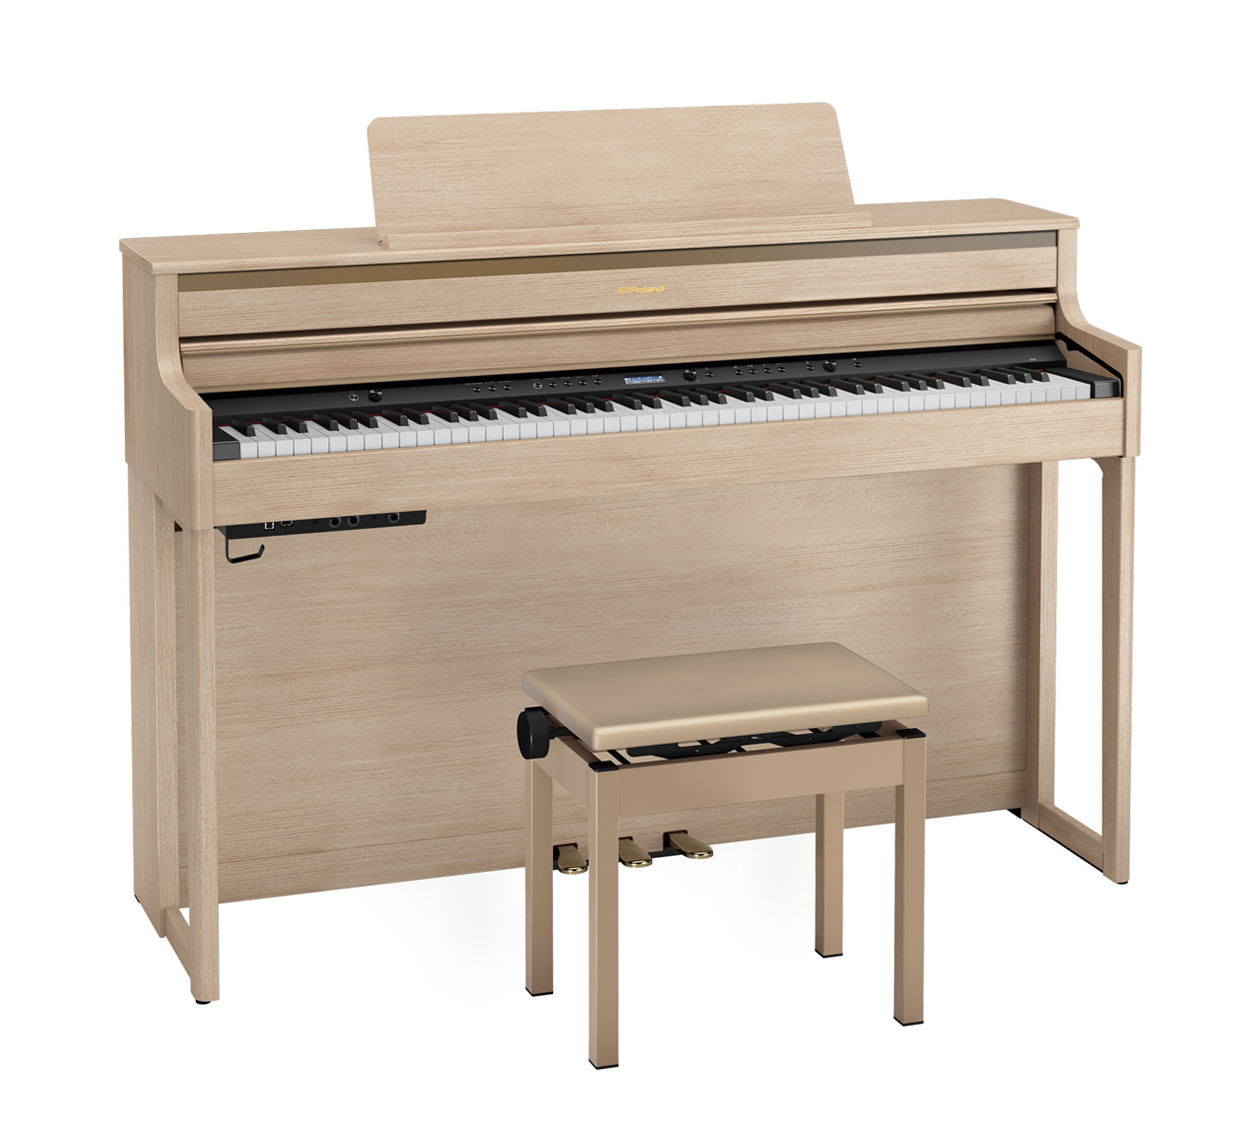 Main Gallery Image: Roland HP704 digital piano.